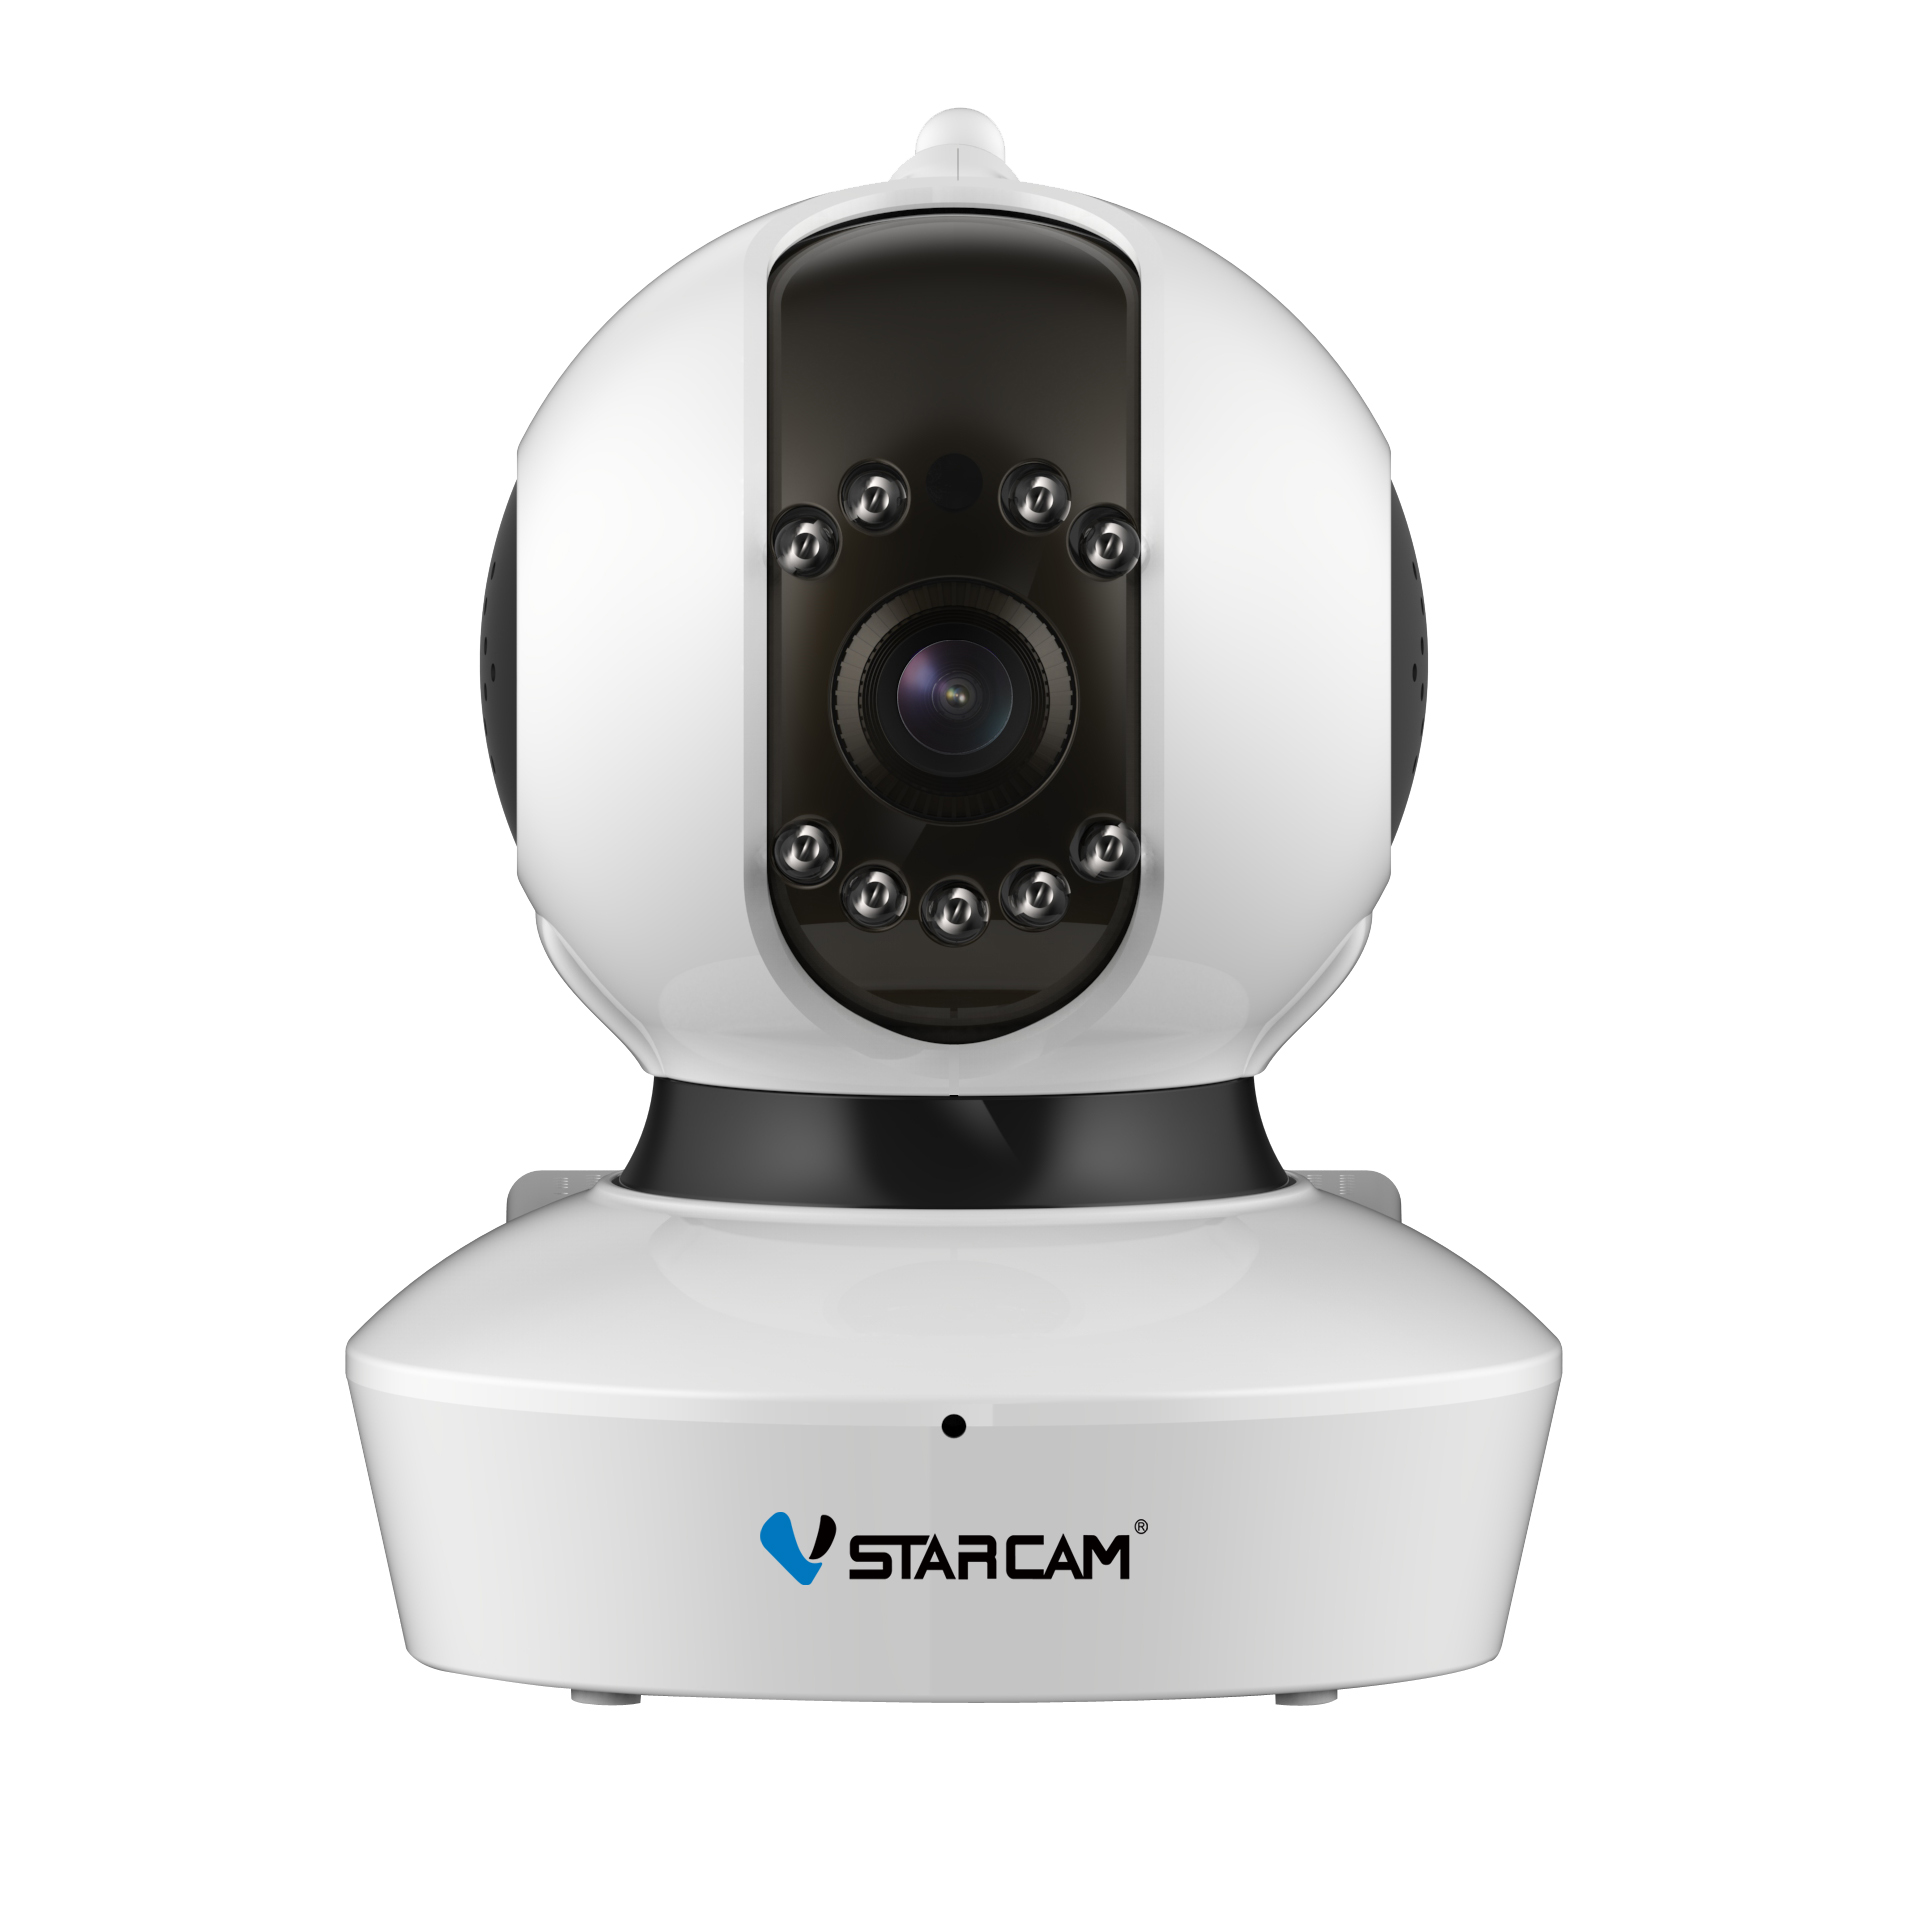 VStarcam 720P HD Cheaper WIFI IP Camera